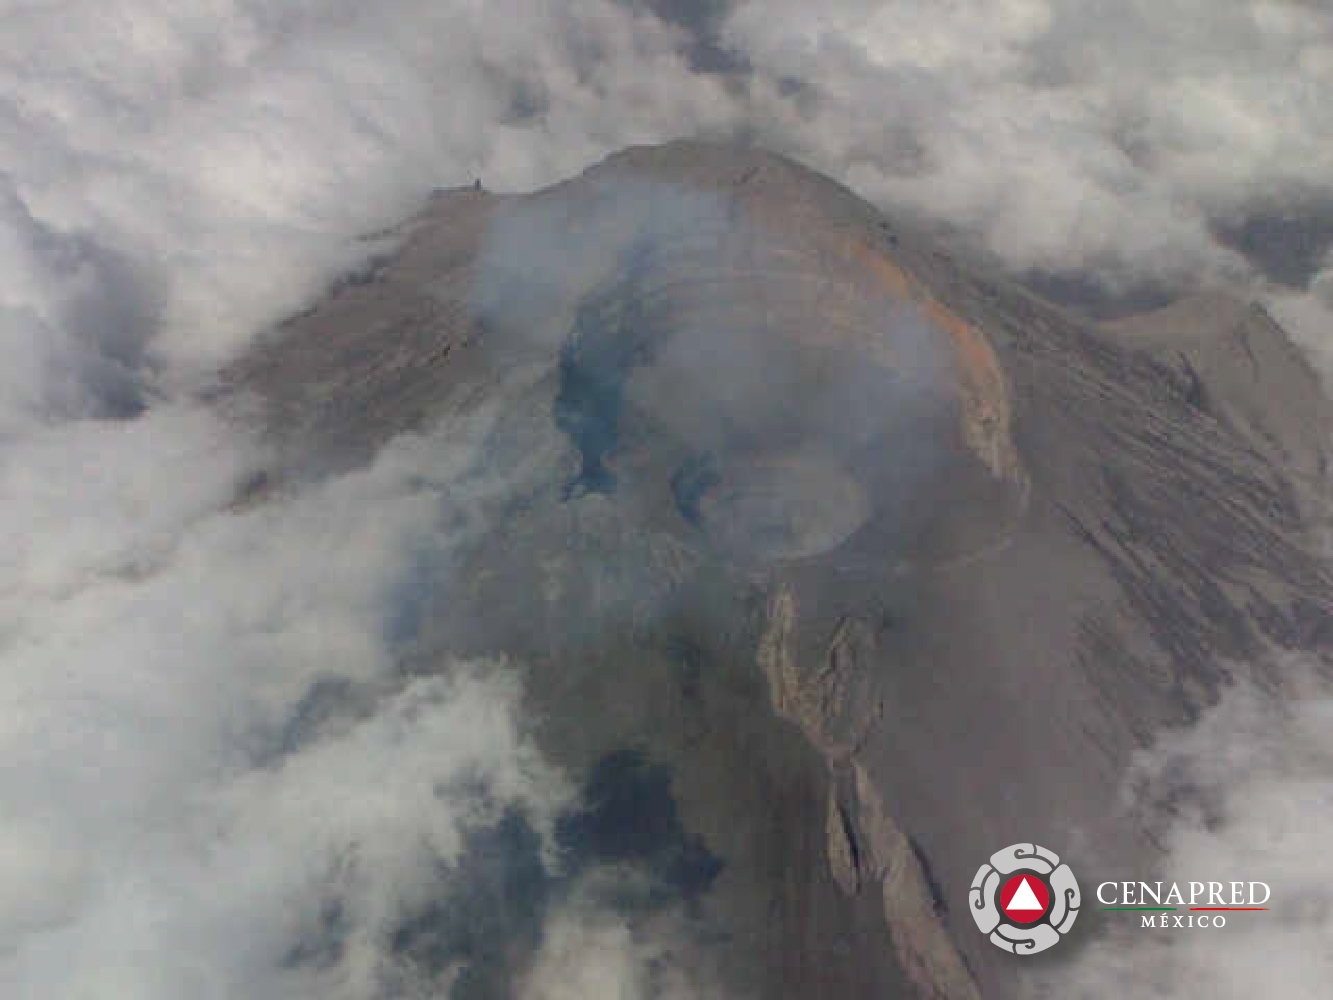 Aerial view of Popocatépetl's summit with the new pit crater (image: CENAPRED)